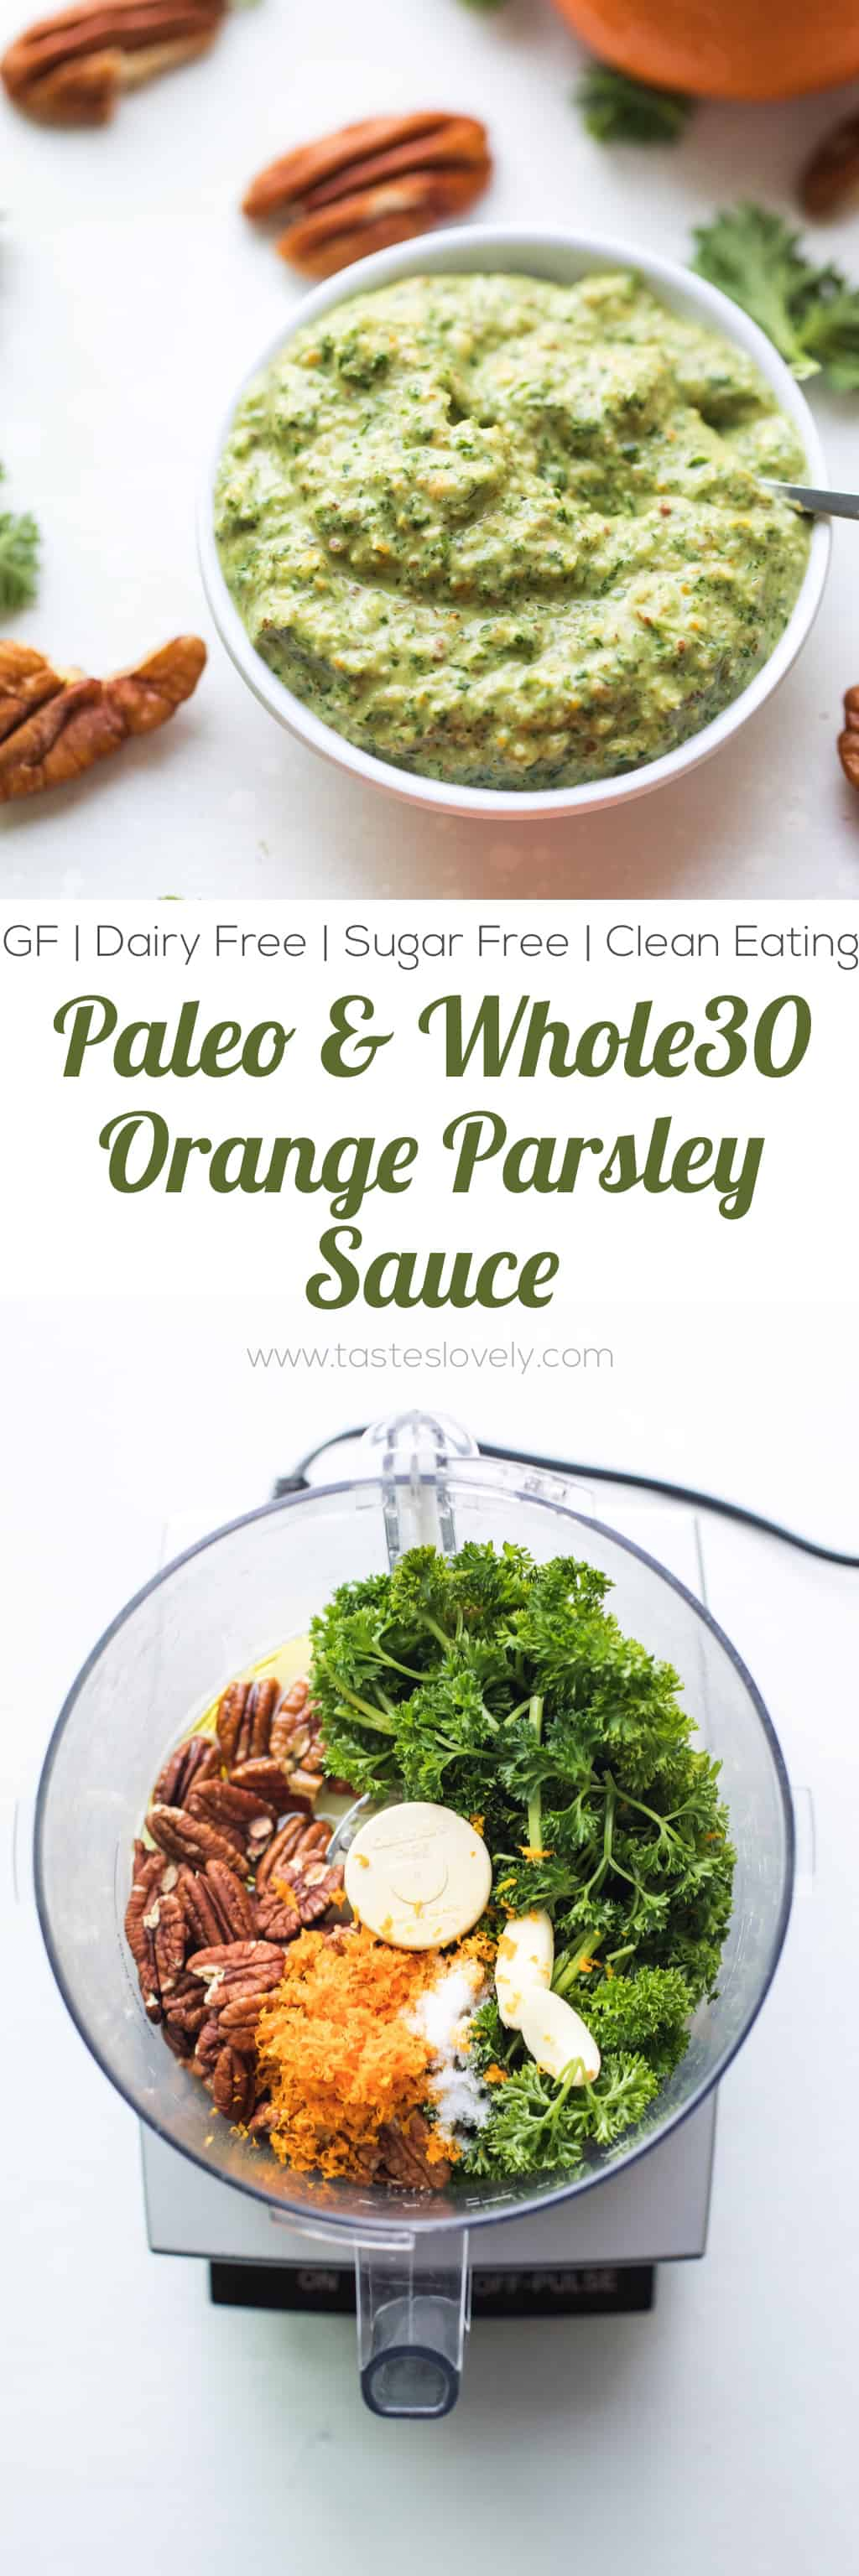 Paleo + Whole30 Orange Parsley Sauce - a citrusy and bright parsley sauce that is delicious on top of meat, fish and roasted vegetables. Gluten free, grain free, dairy free, sugar free, sugar free, clean eating, real food.